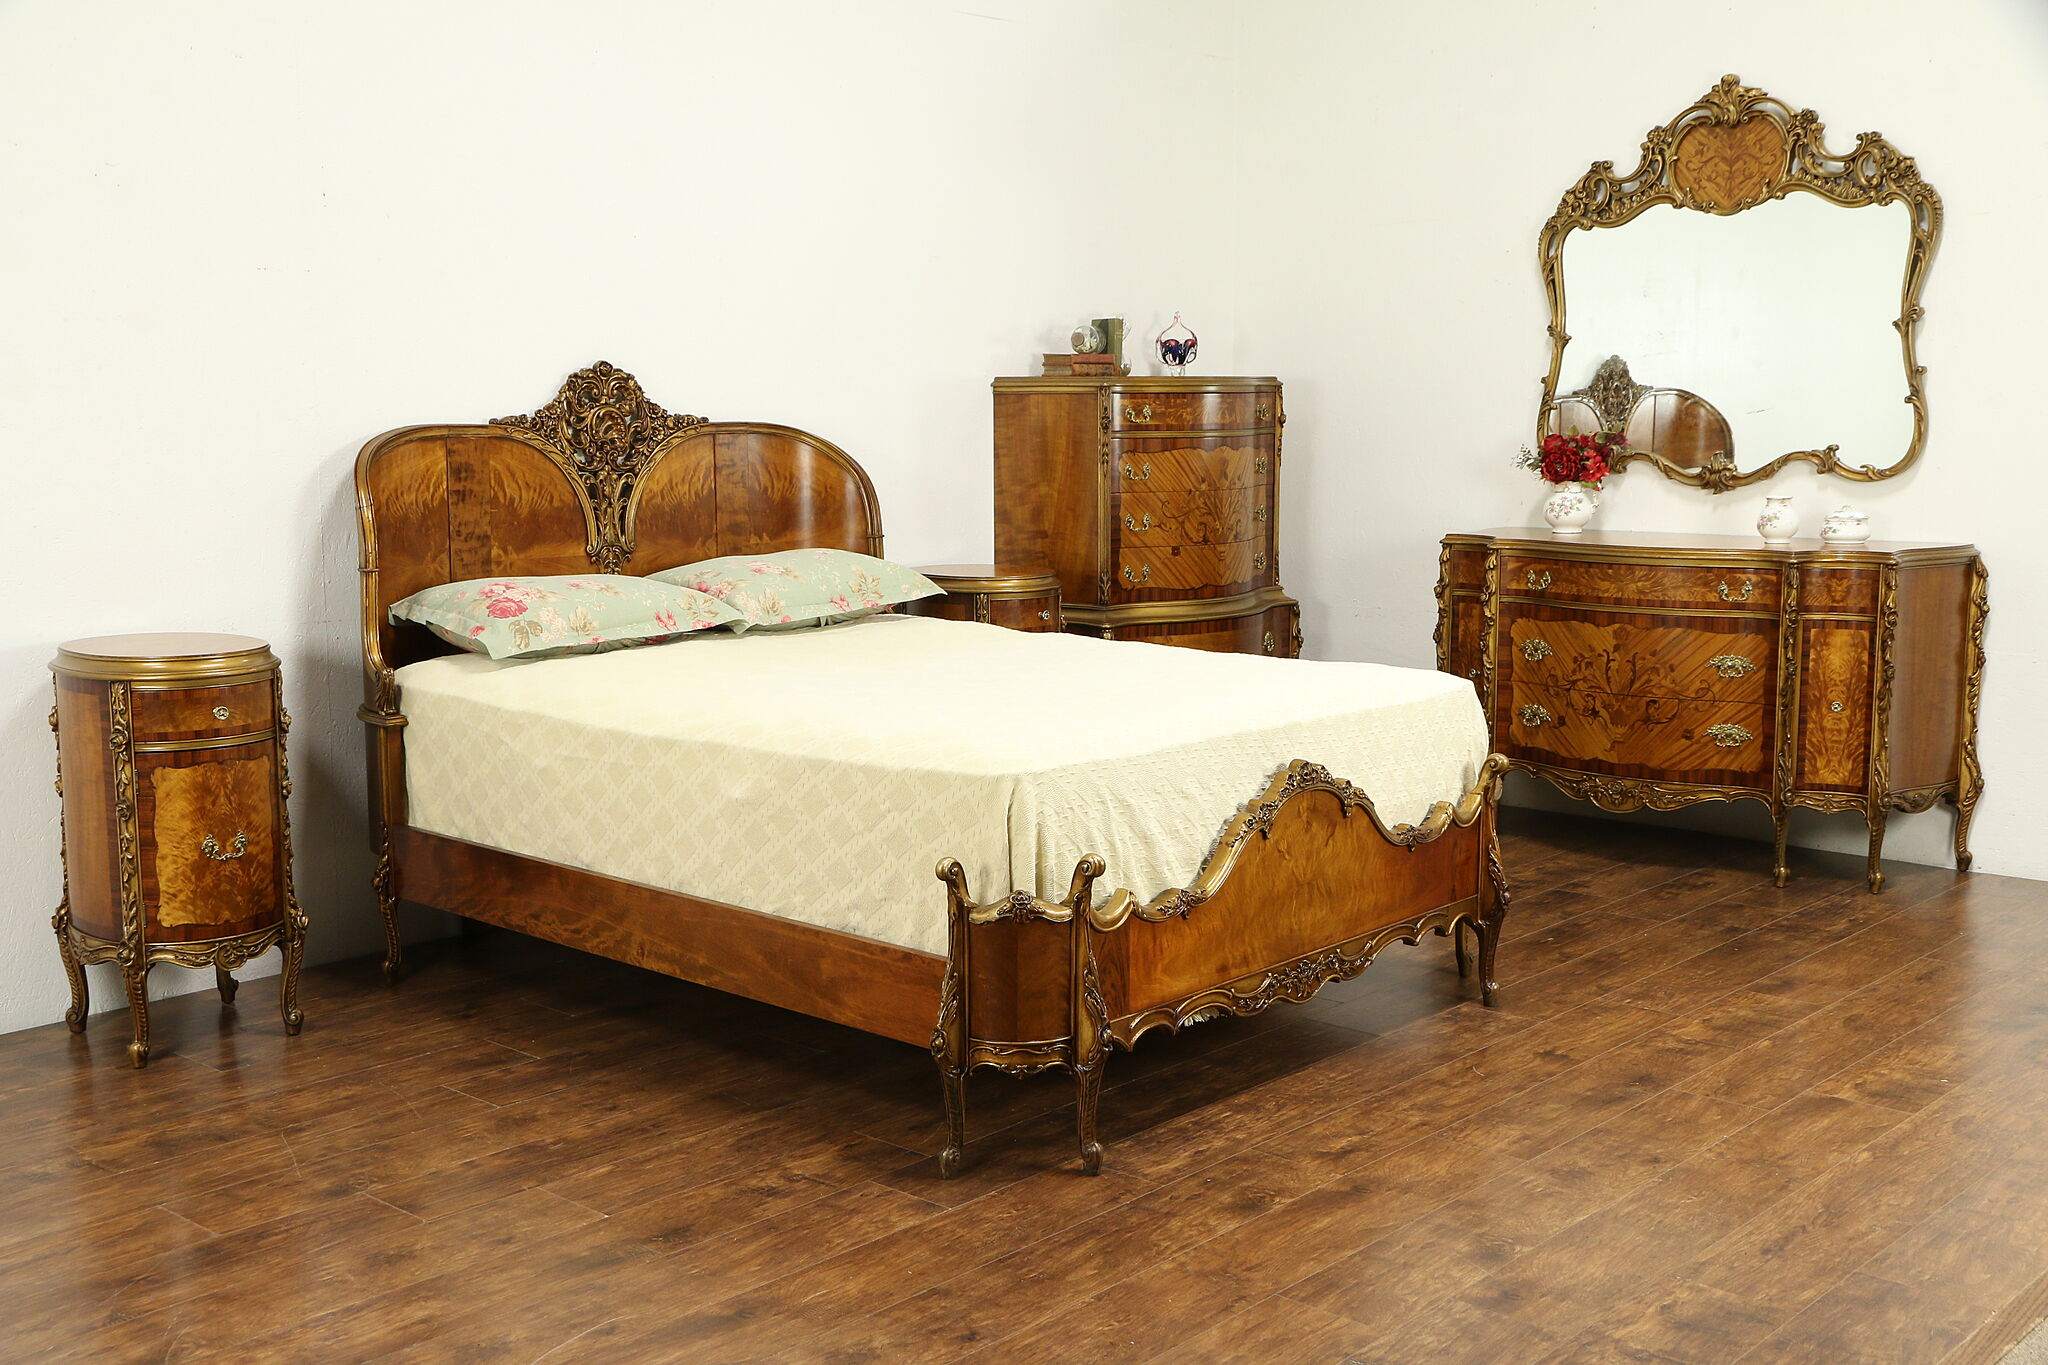 Satinwood & Rosewood Marquetry Queen Size 6 Pc Bedroom Set, Rockford #31829